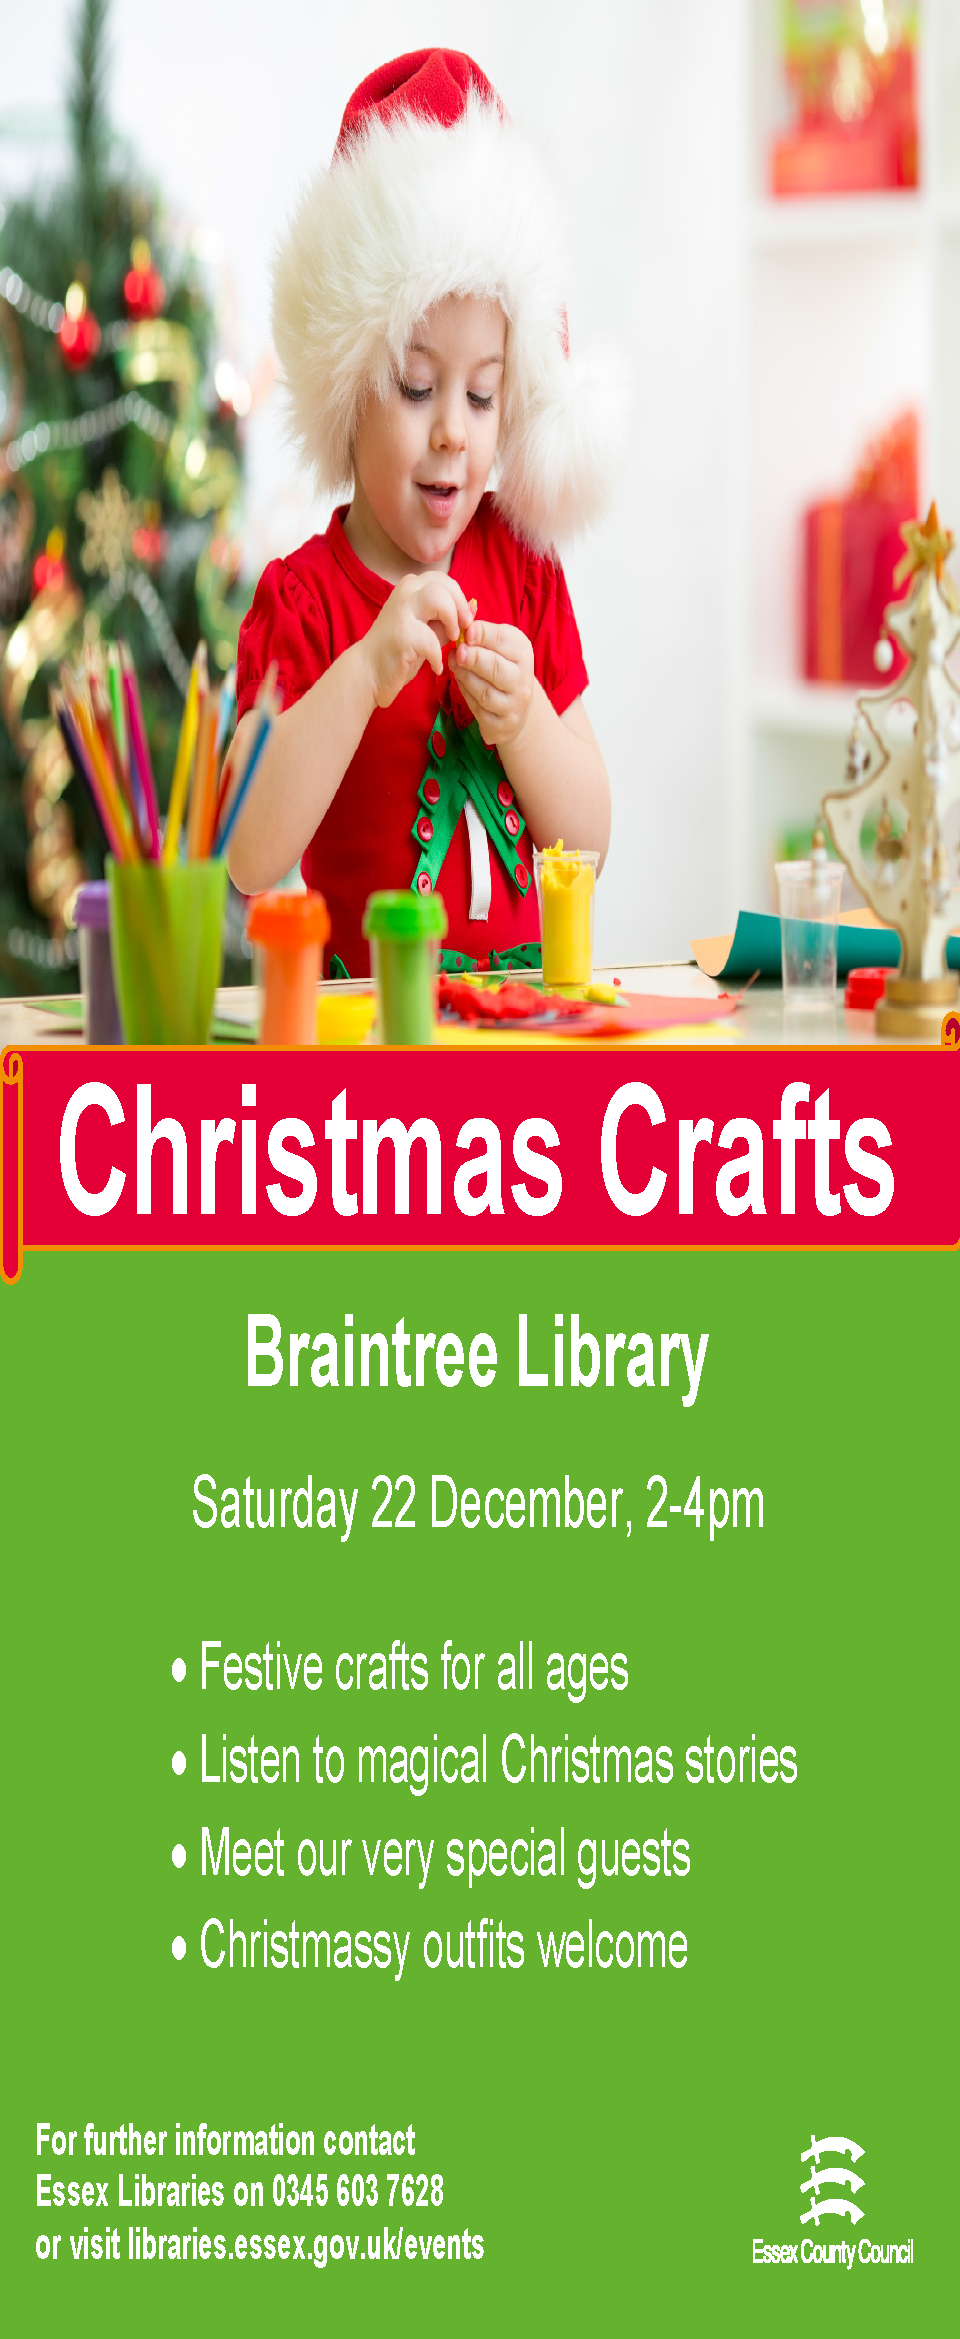 Christmas Crafts at Braintree Library